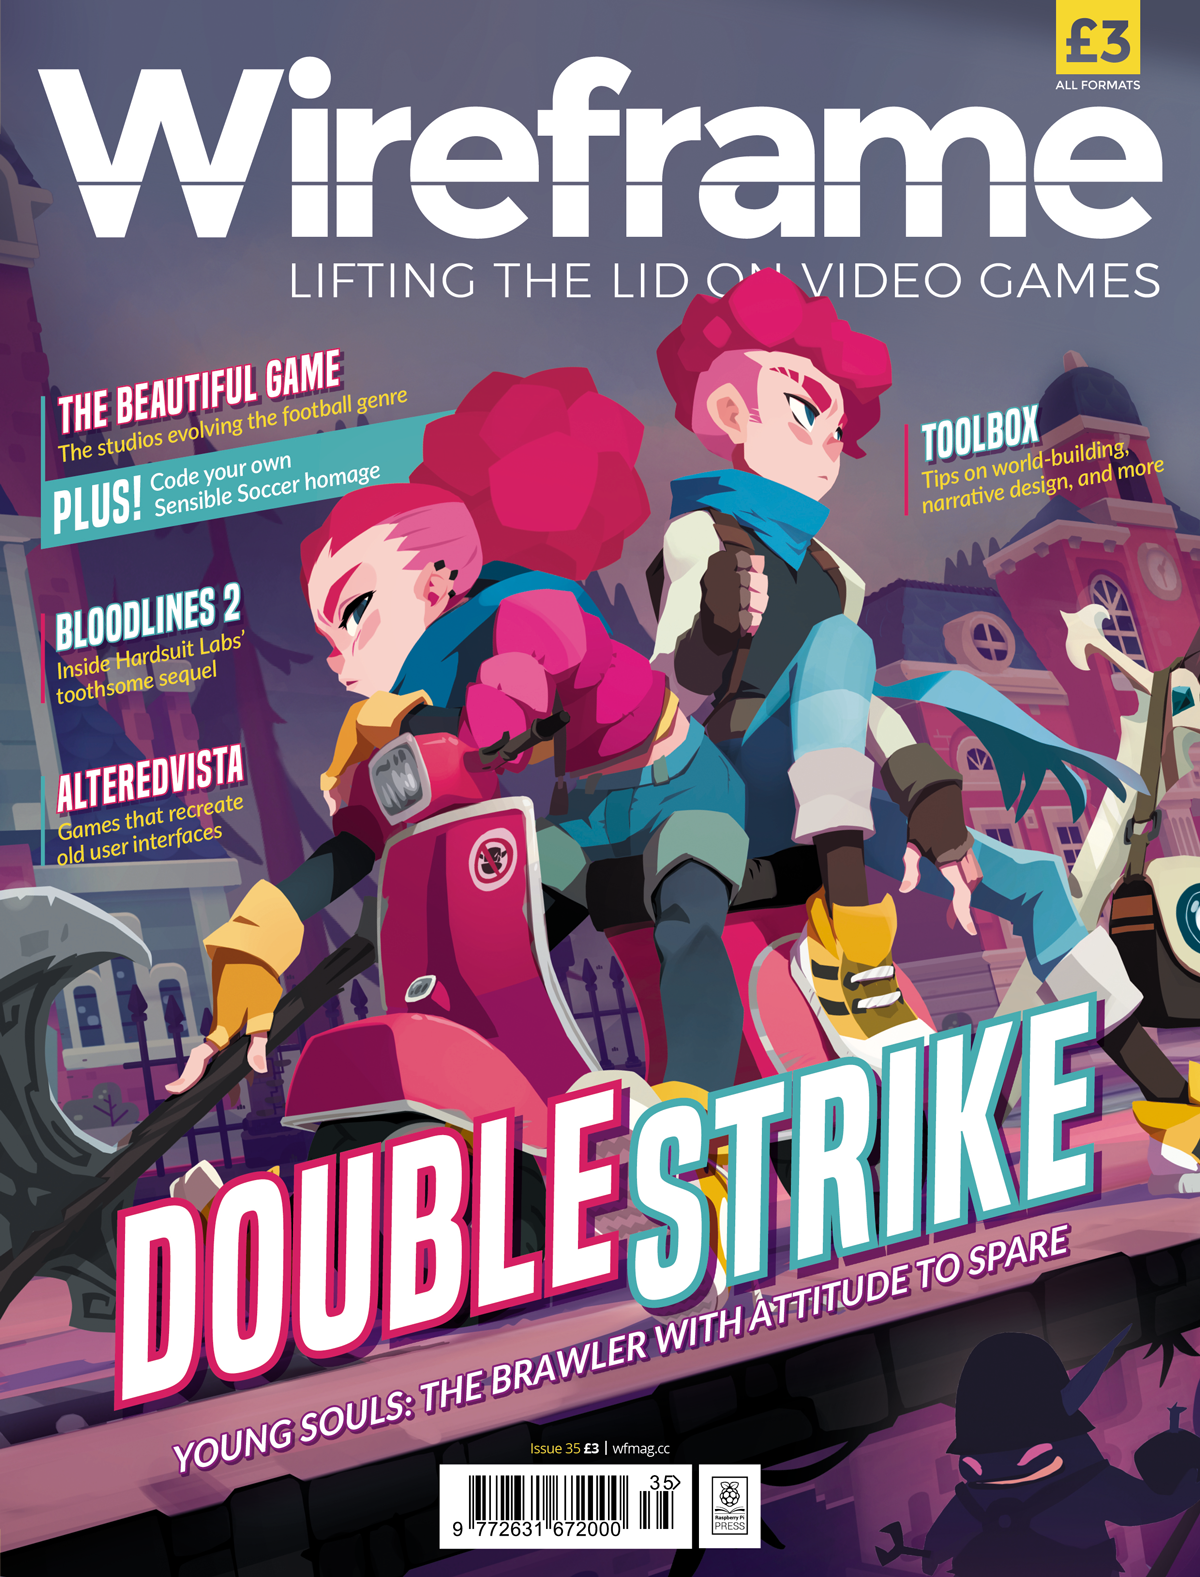 Wireframe issue 35 cover